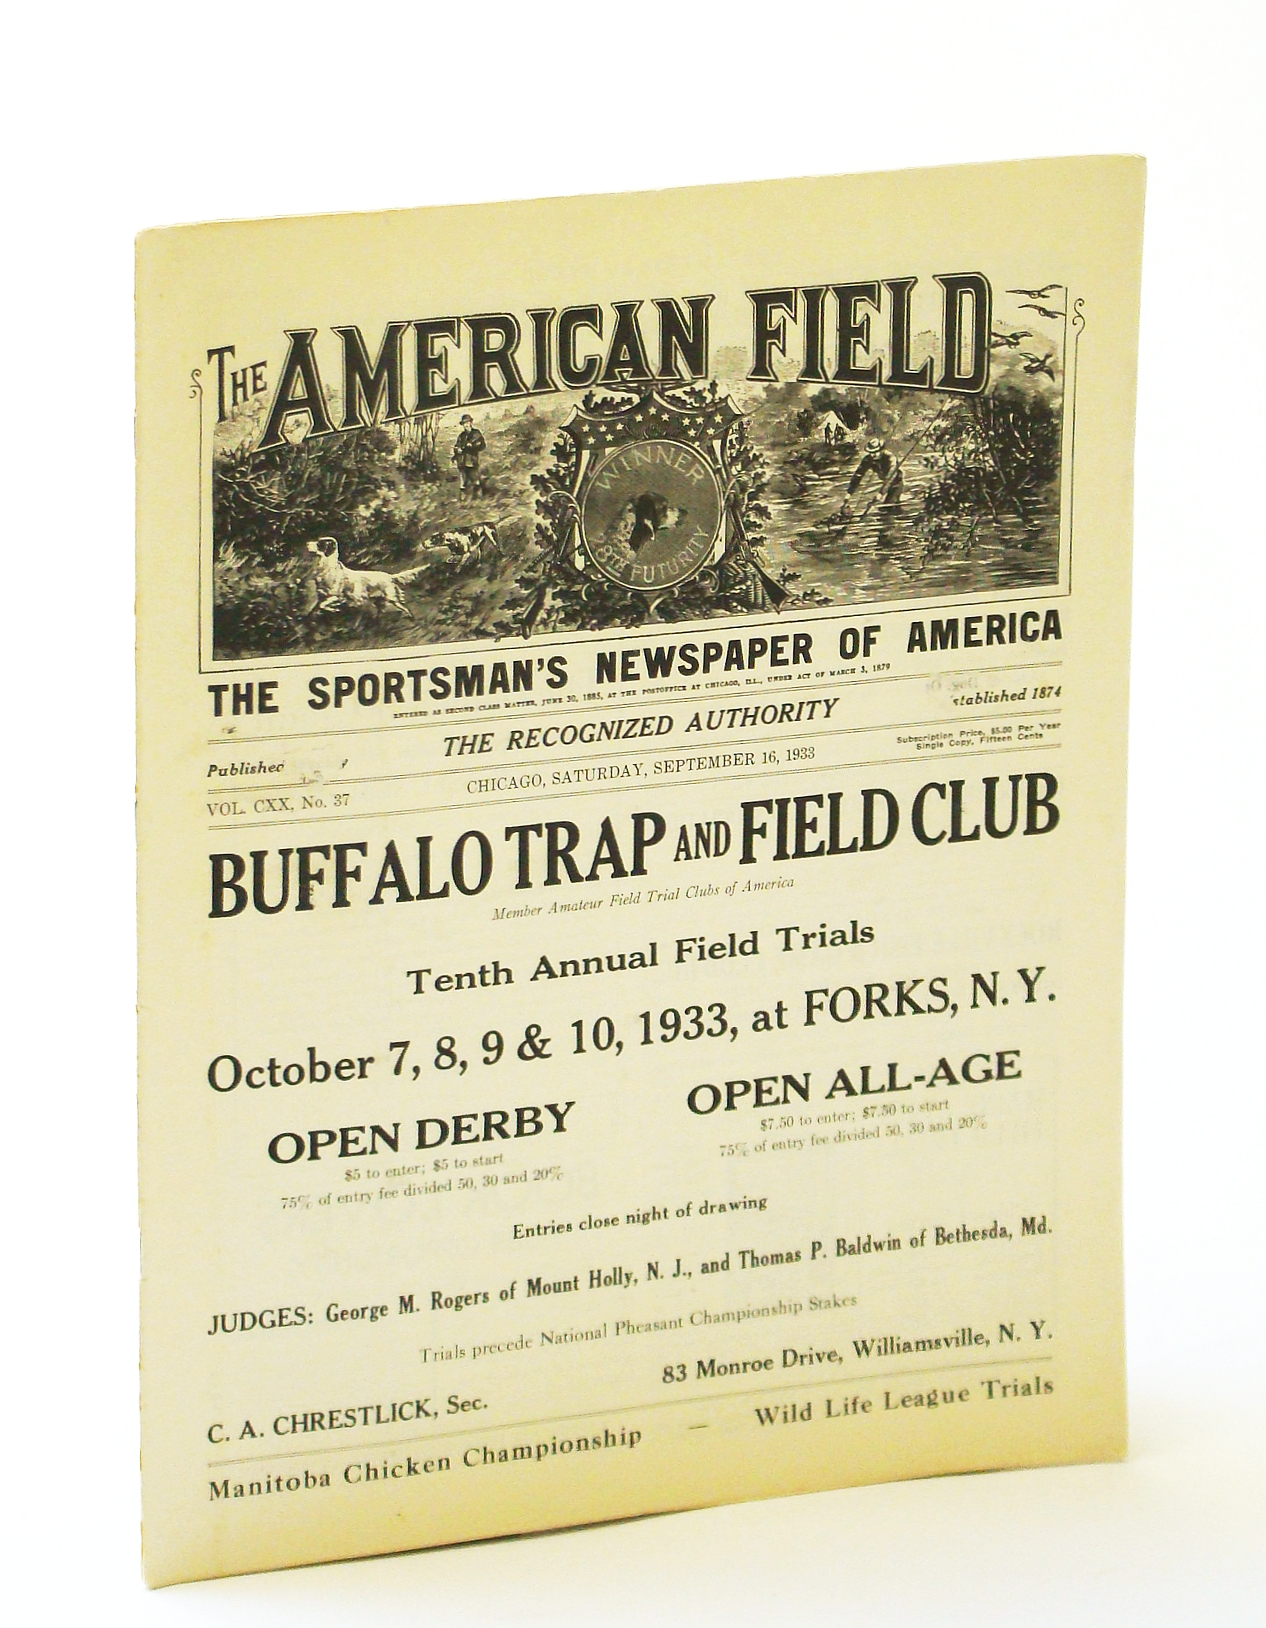 Image for The American Field - The Sportsman's Newspaper [Magazine] of America, September [Sept.] 16, 1933, Vol. CXX, No. 37 - Manitoba Prairie Chicken Championship / Wild Life League Trials